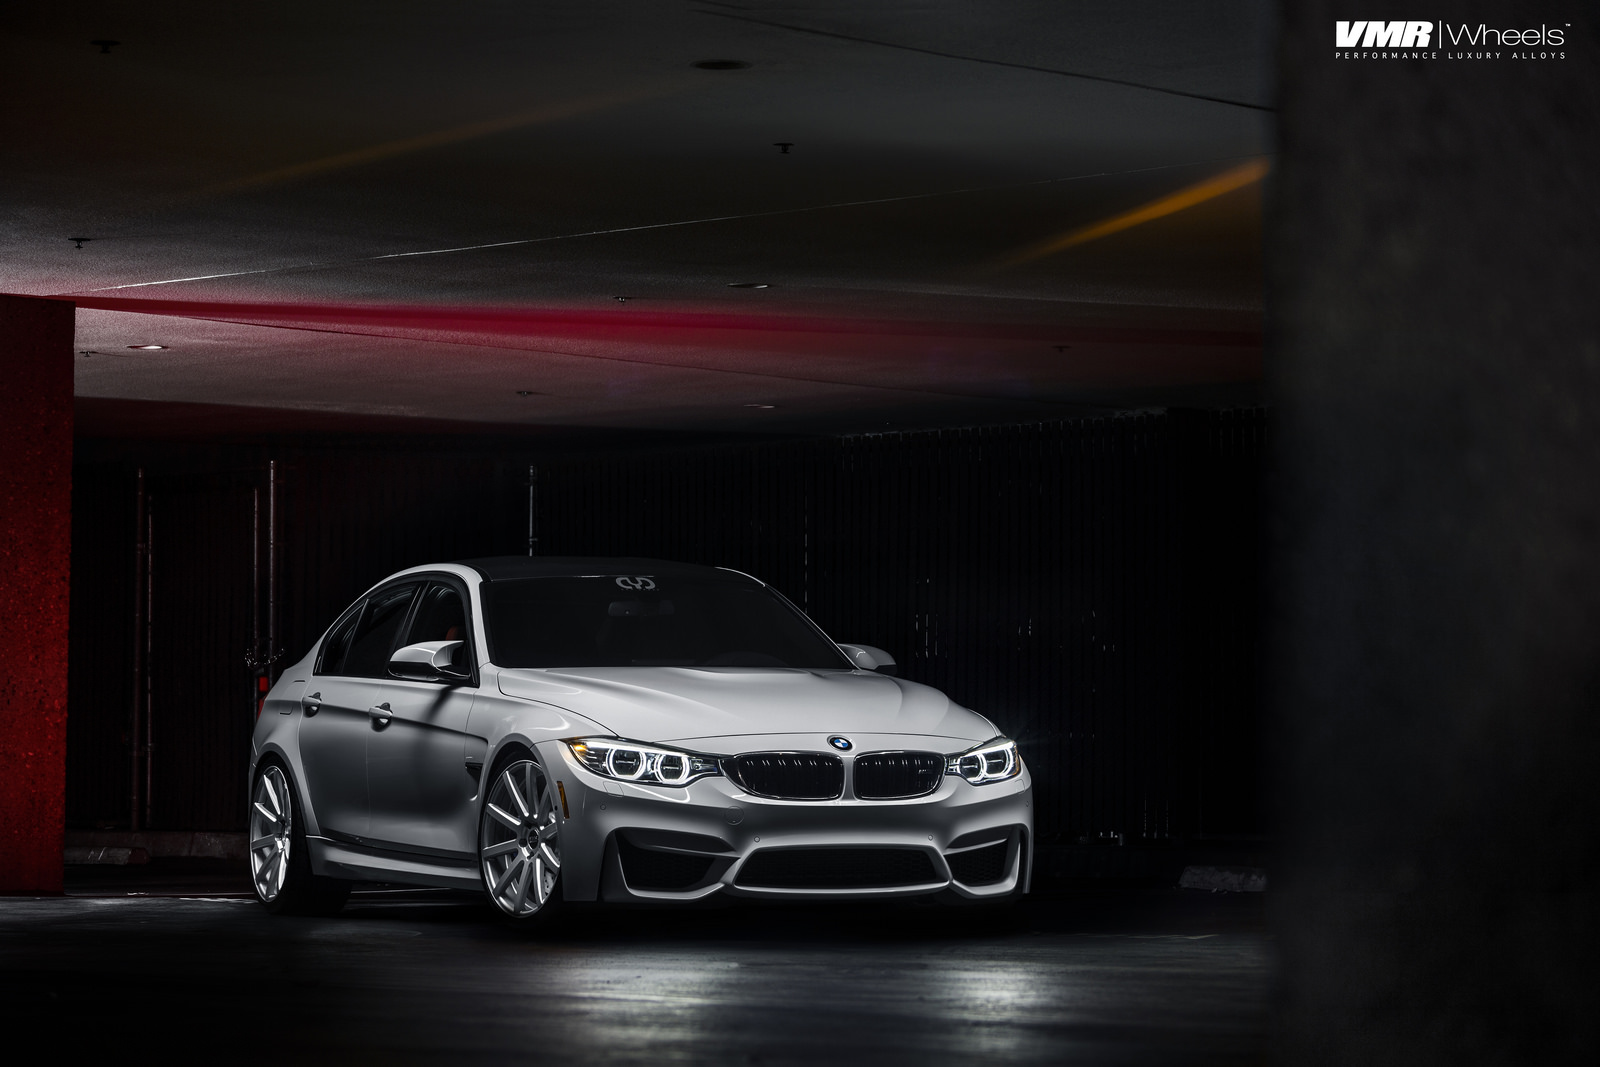 Alpine White BMW F80 M3 With VMR 702 Wheels 1